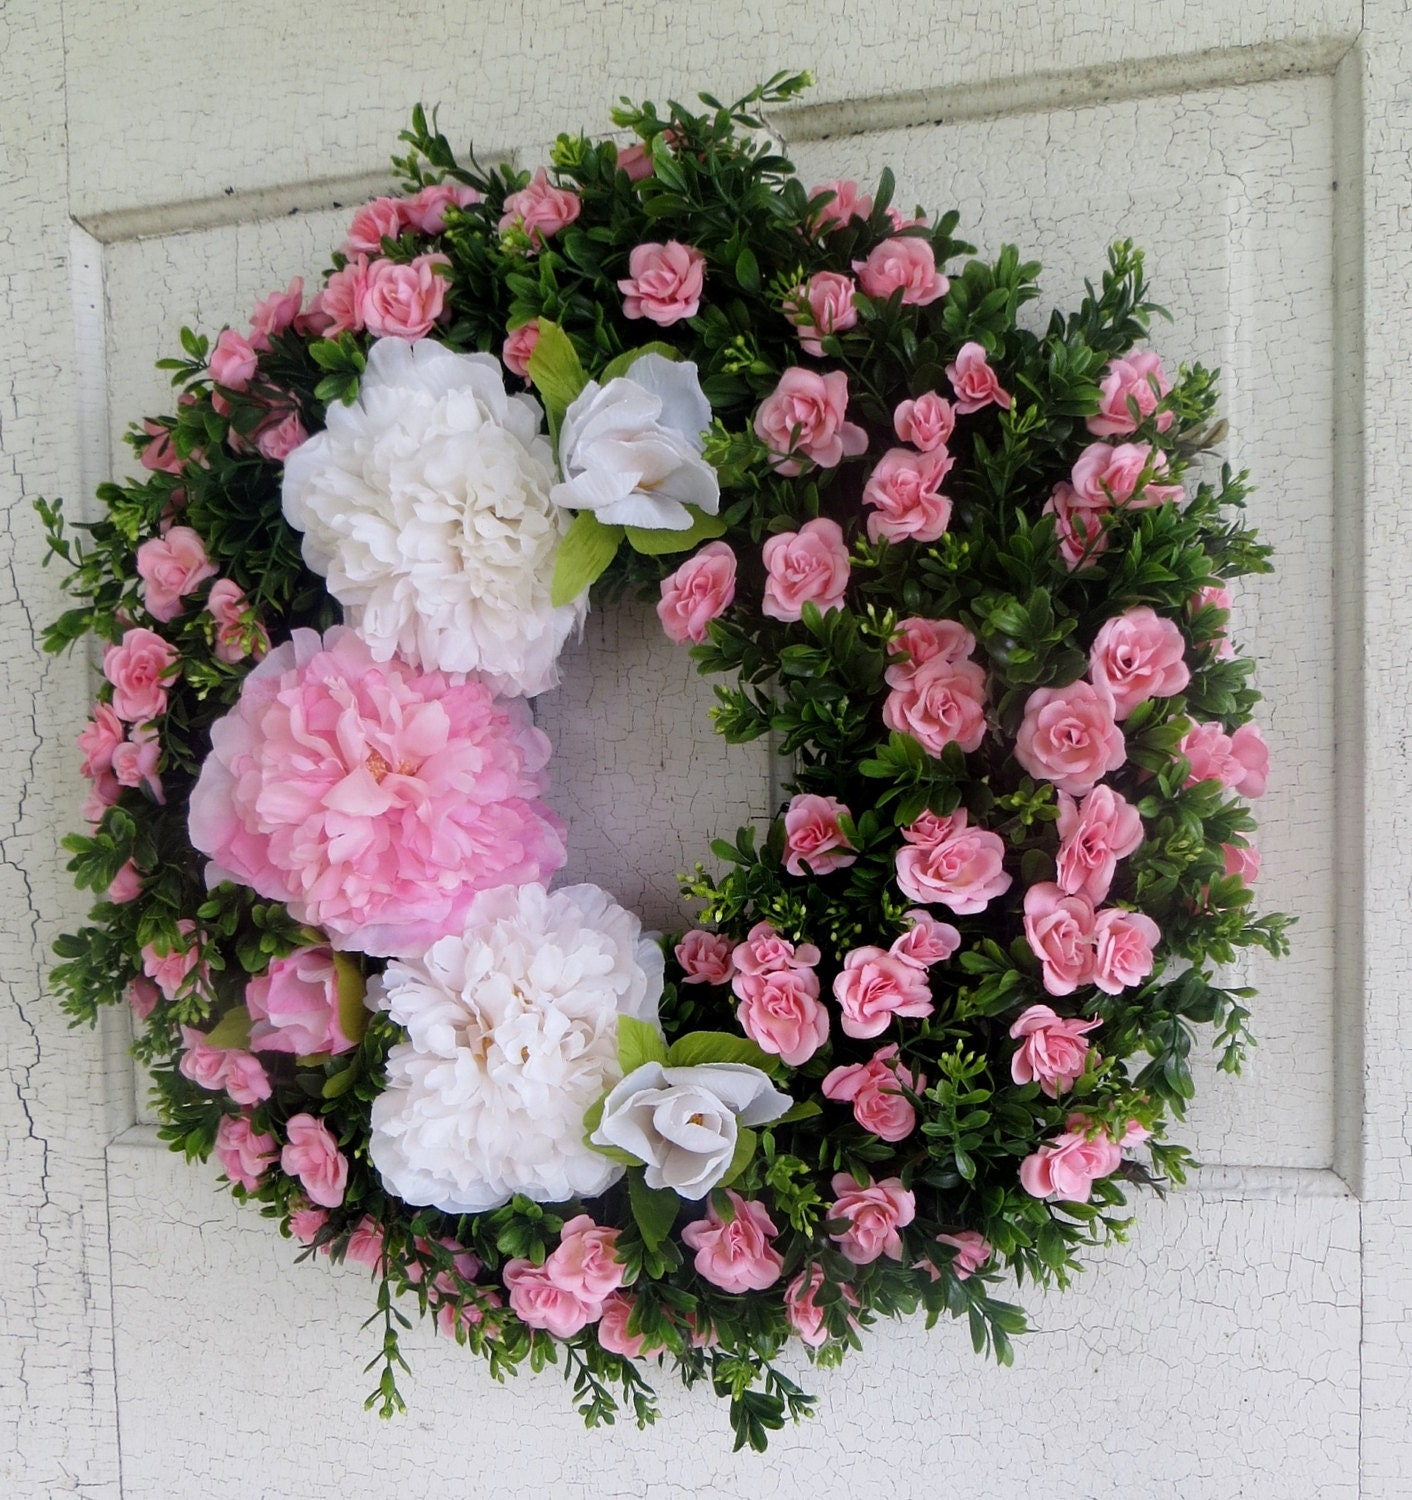 Summer front door wreaths - Pink And White Peony Wreath Pink Rose Wreath Boxwood Wreath Front Door Wreath Summer Wreath